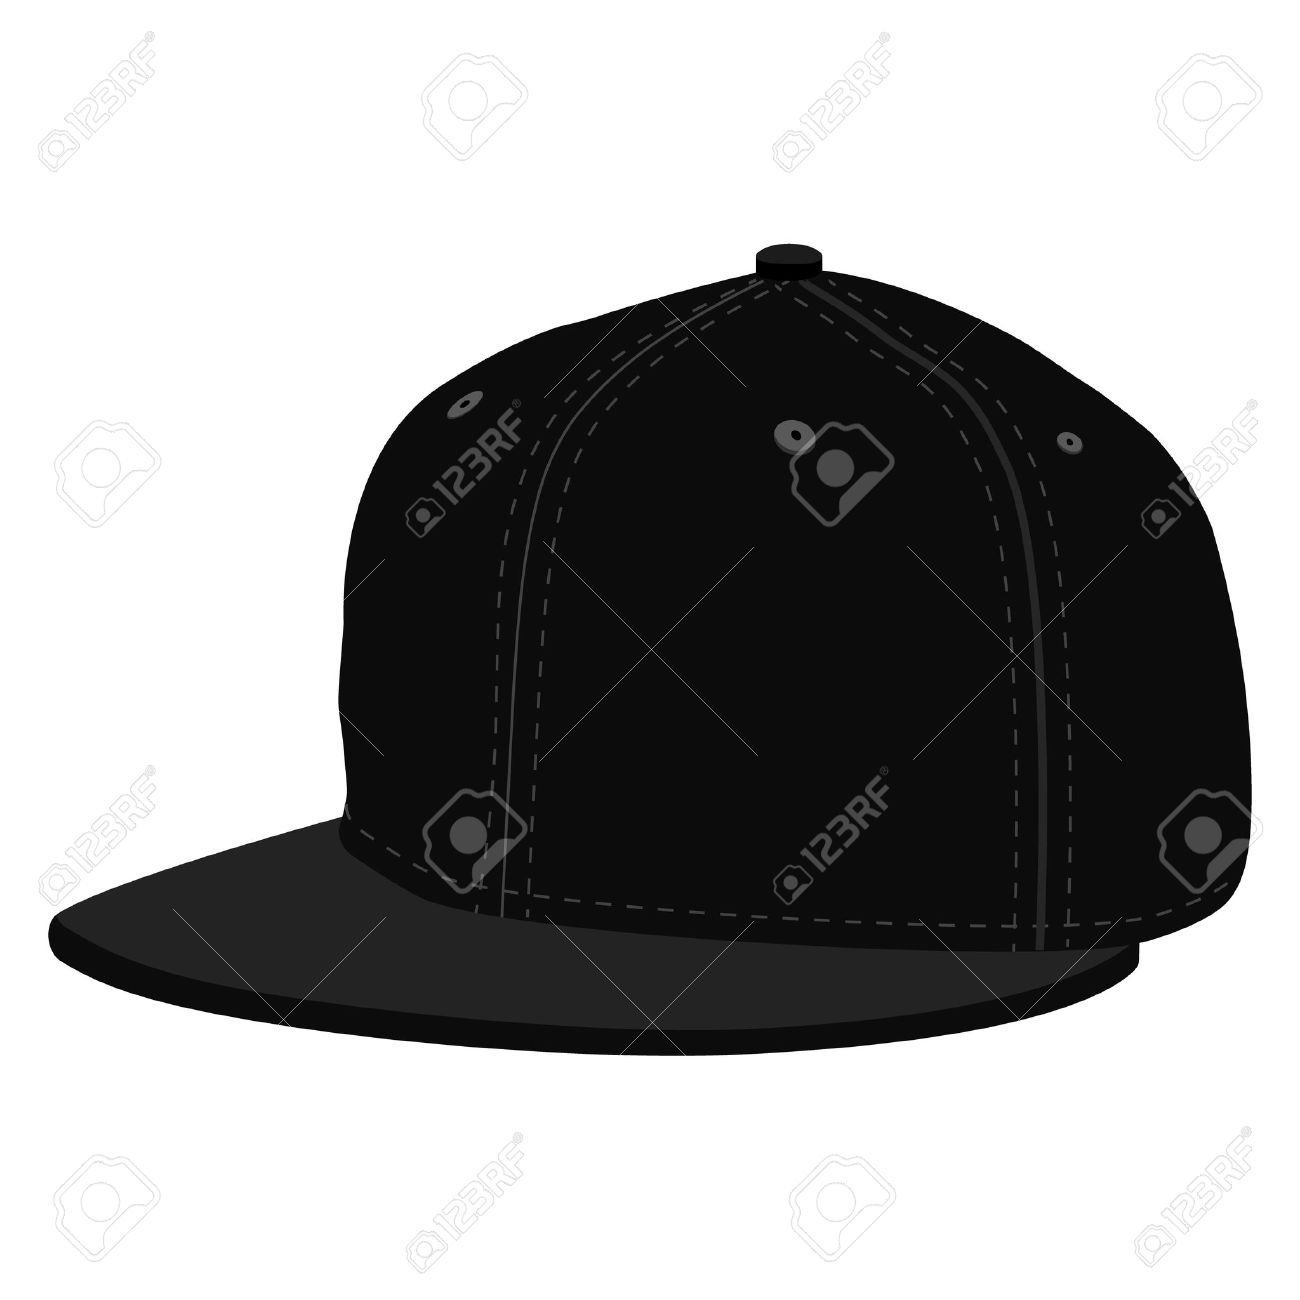 illustration black hip hop or rapper baseball cap baseball cap rh 123rf com baseball cap vector free download baseball cap vector download